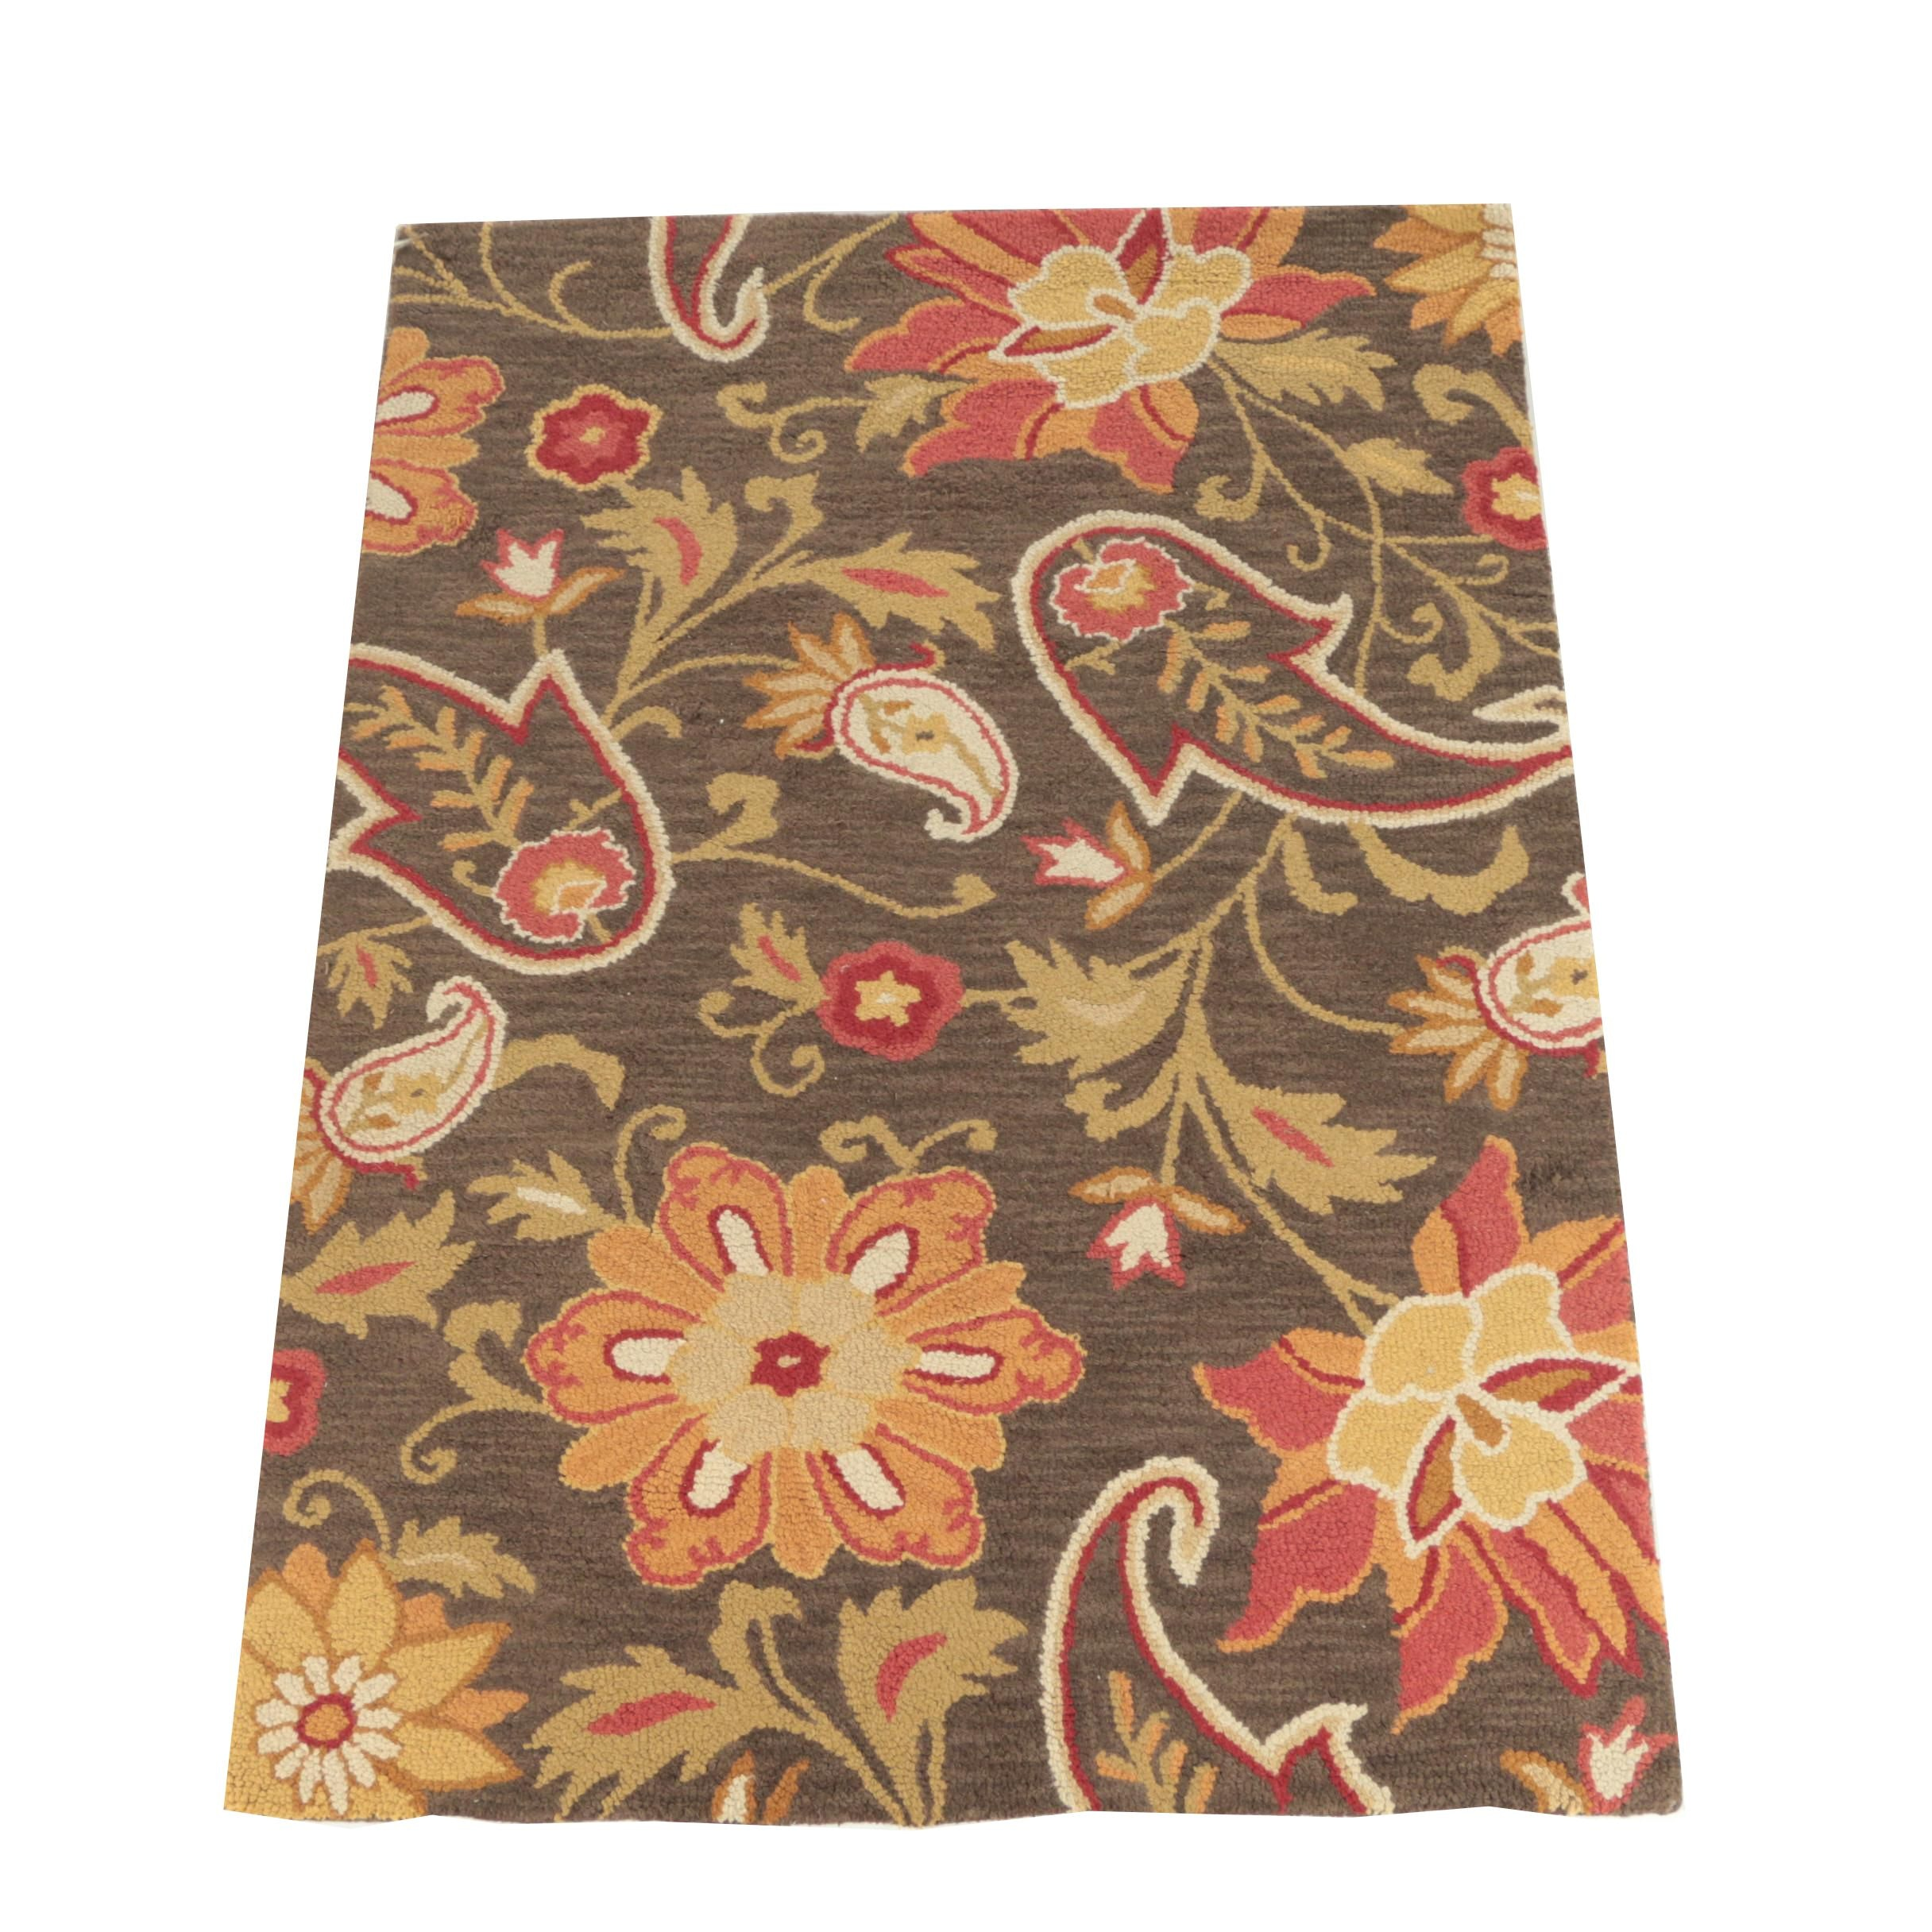 "Hand-Hooked Indian ""Jacobean Floral"" Wool Area Rug by Fieldcrest Luxury"